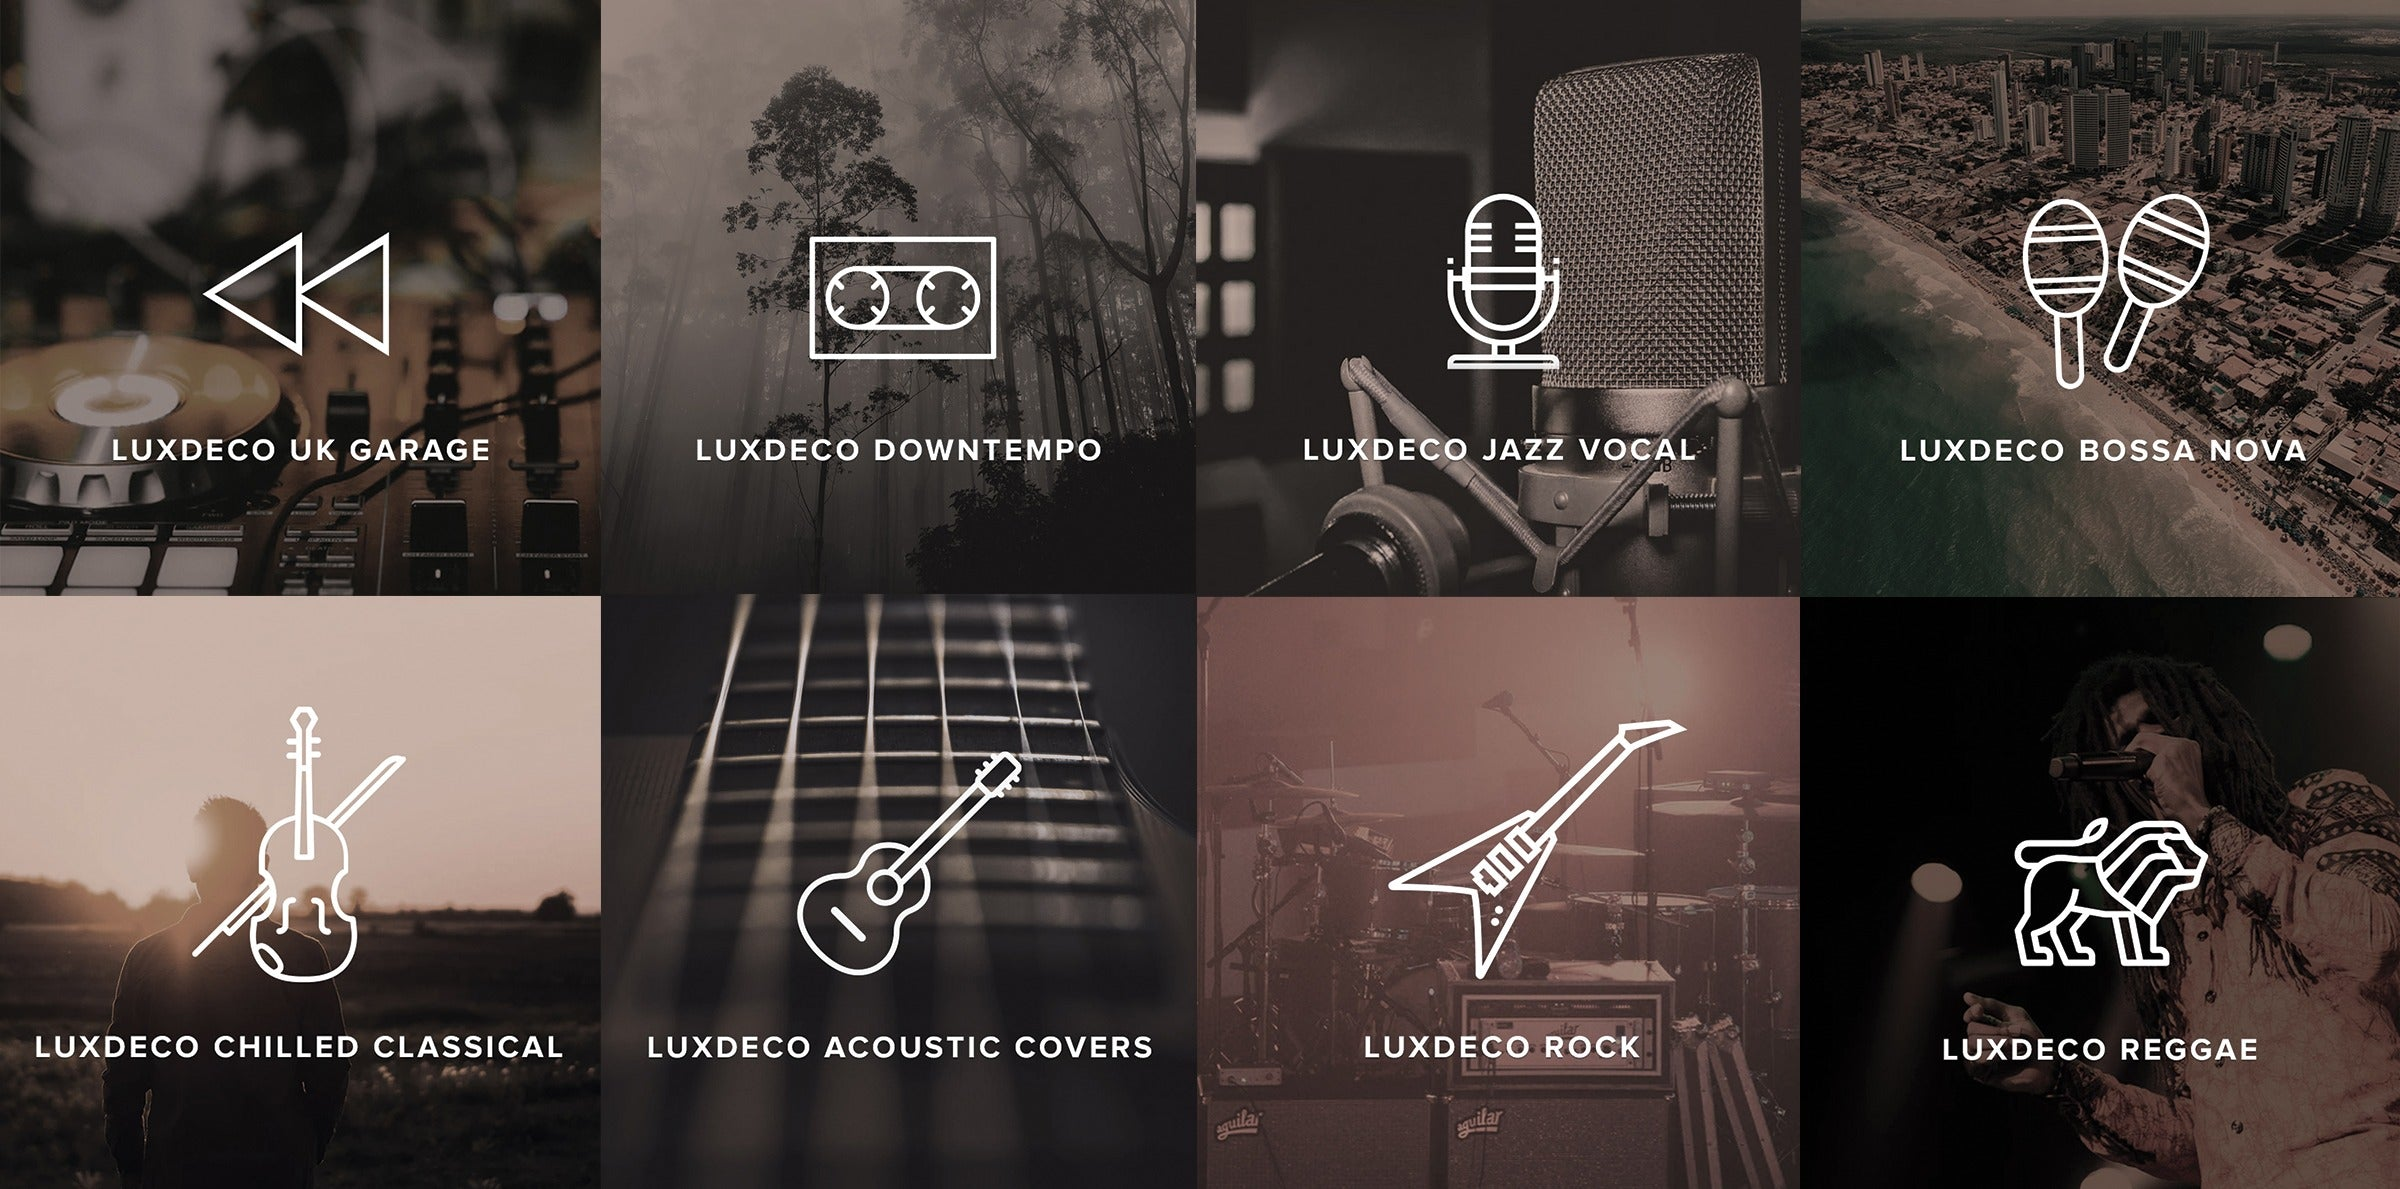 Introducing The Sound of LuxDeco | Spotify Playlists | LuxDeco.com